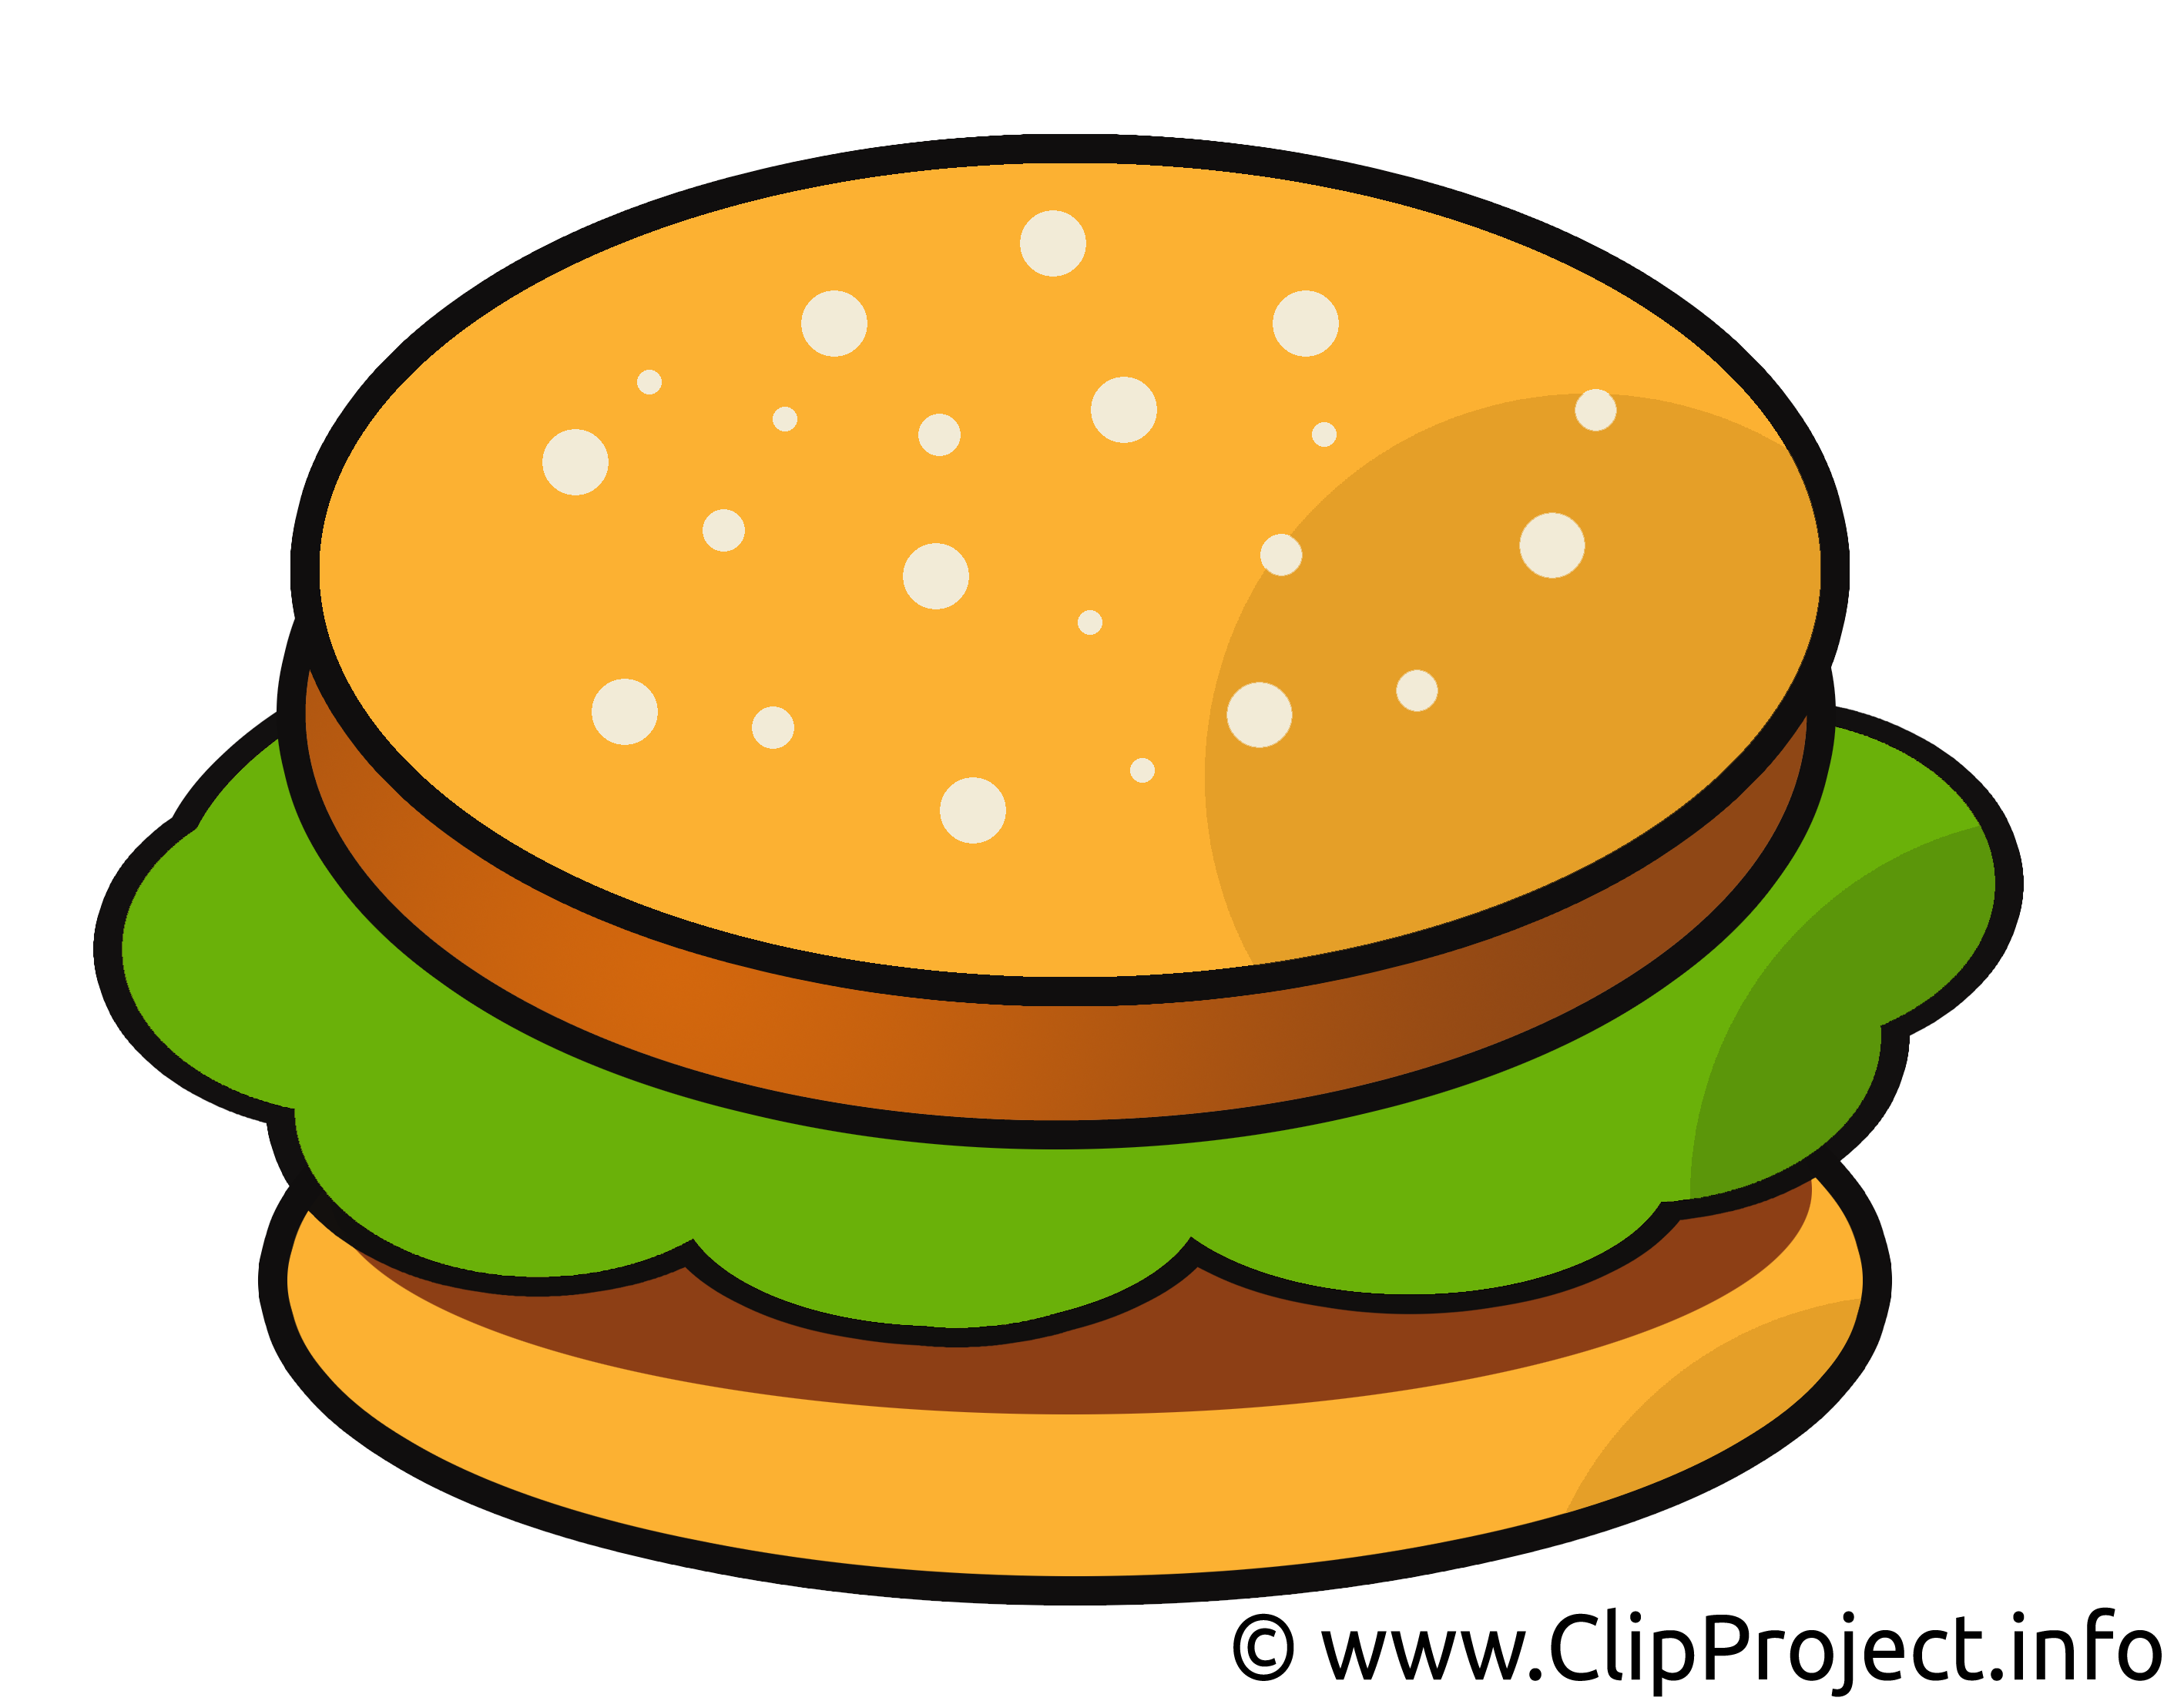 Hamburger clipart comic.